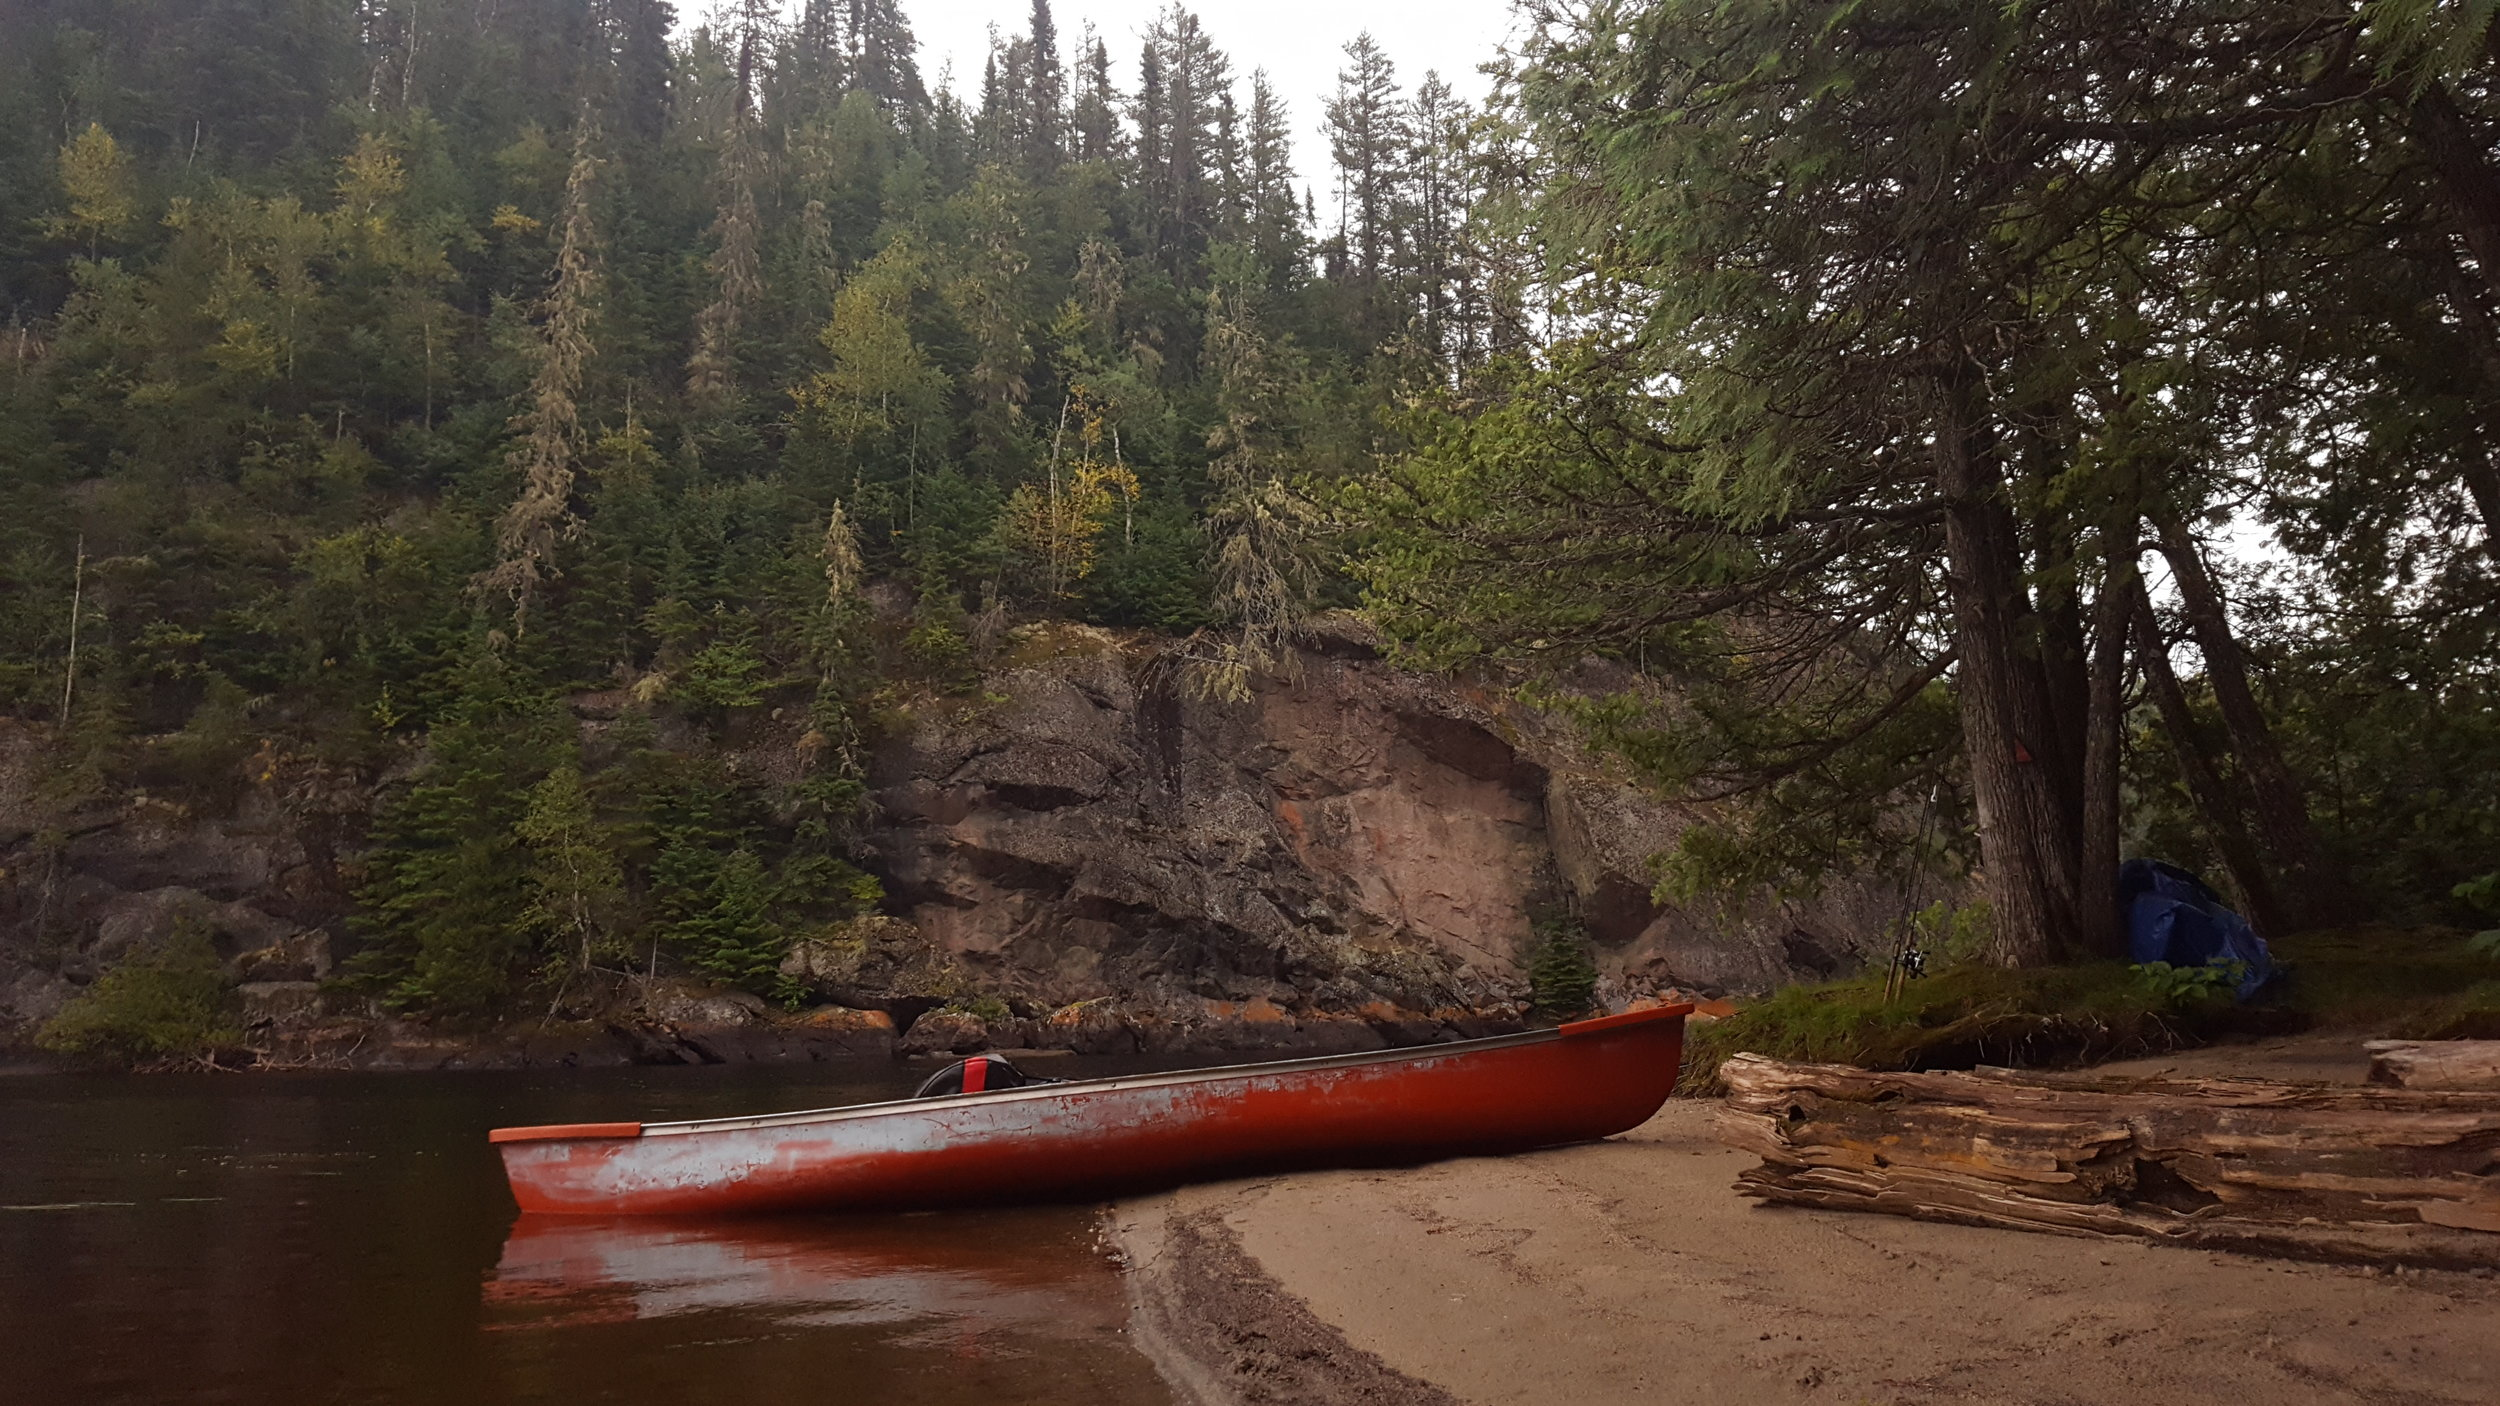 Camp 5 - Beach site next to a cliff face on the Steel River